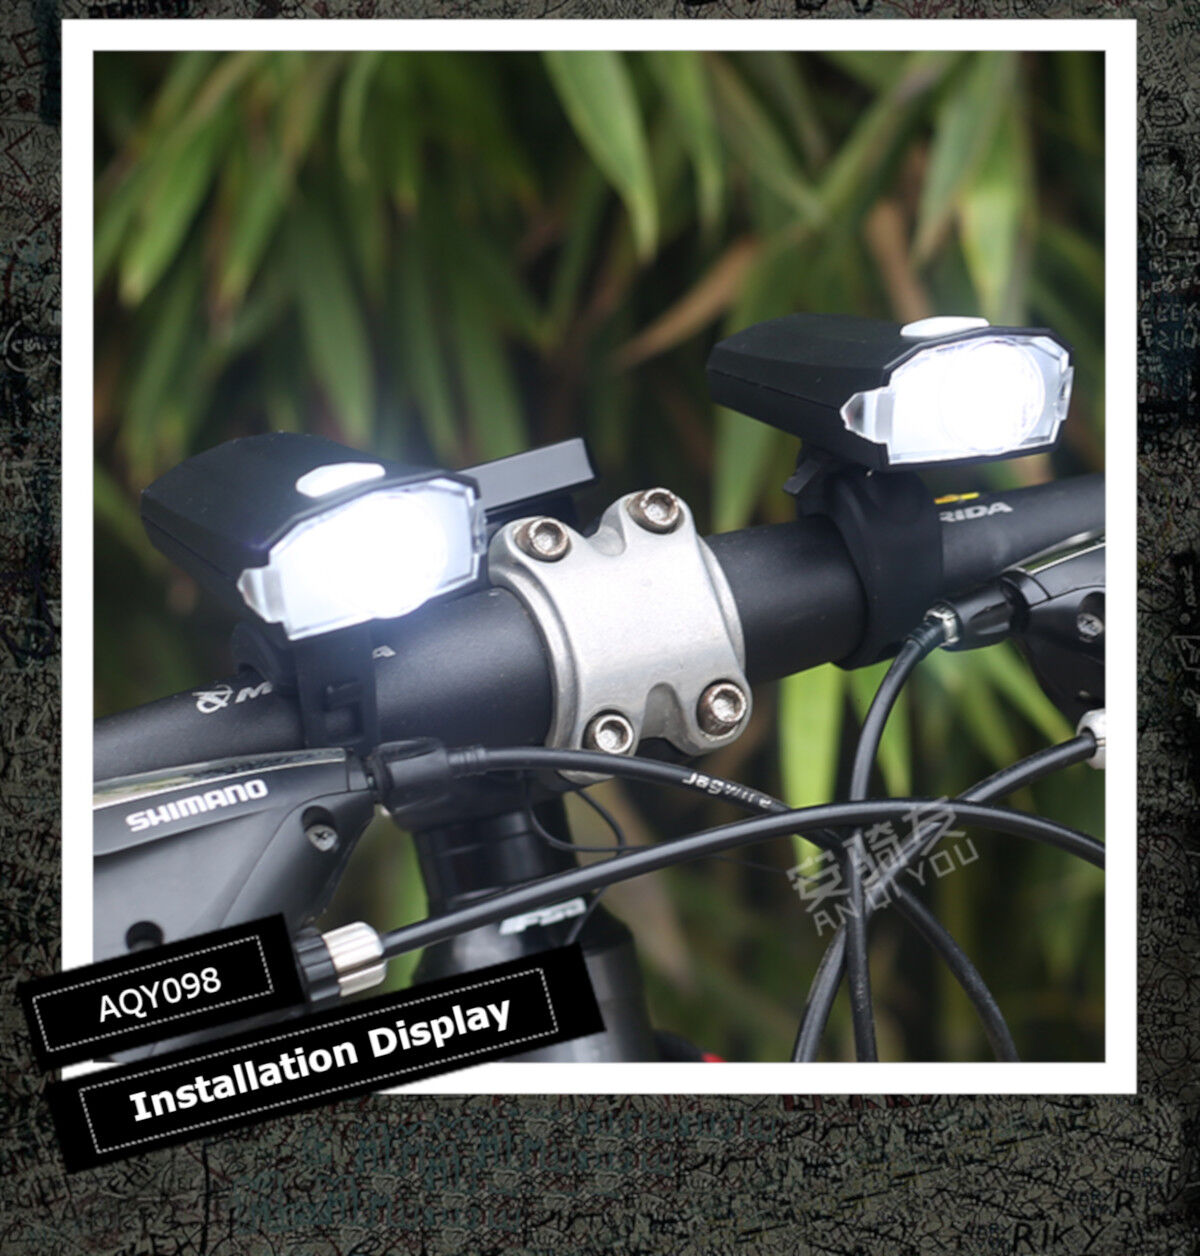 5000lm XPE LED USB Rechargeable Bicycle Bike Headlight Front Lamp Torch Light